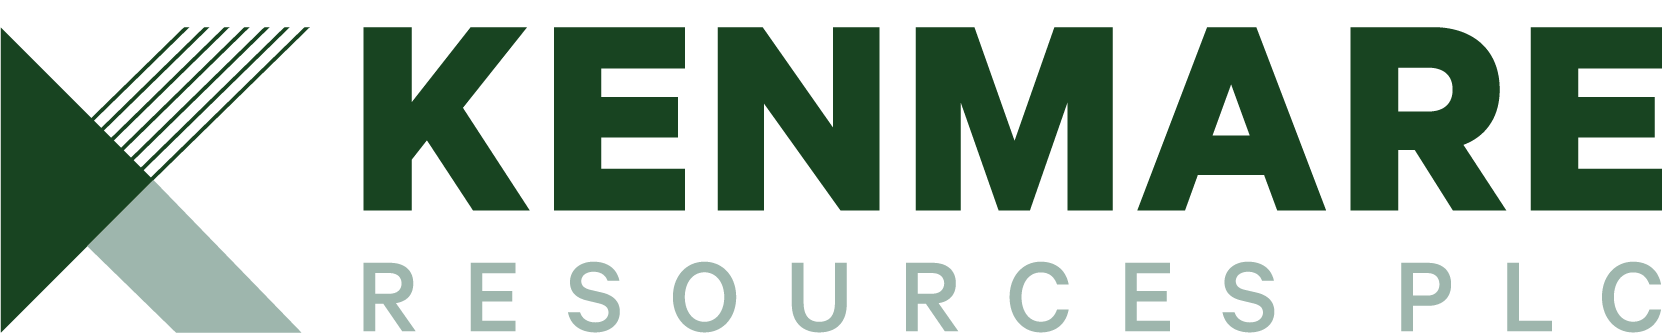 KENMARE RESOURCES_CMYK_LOGO.png